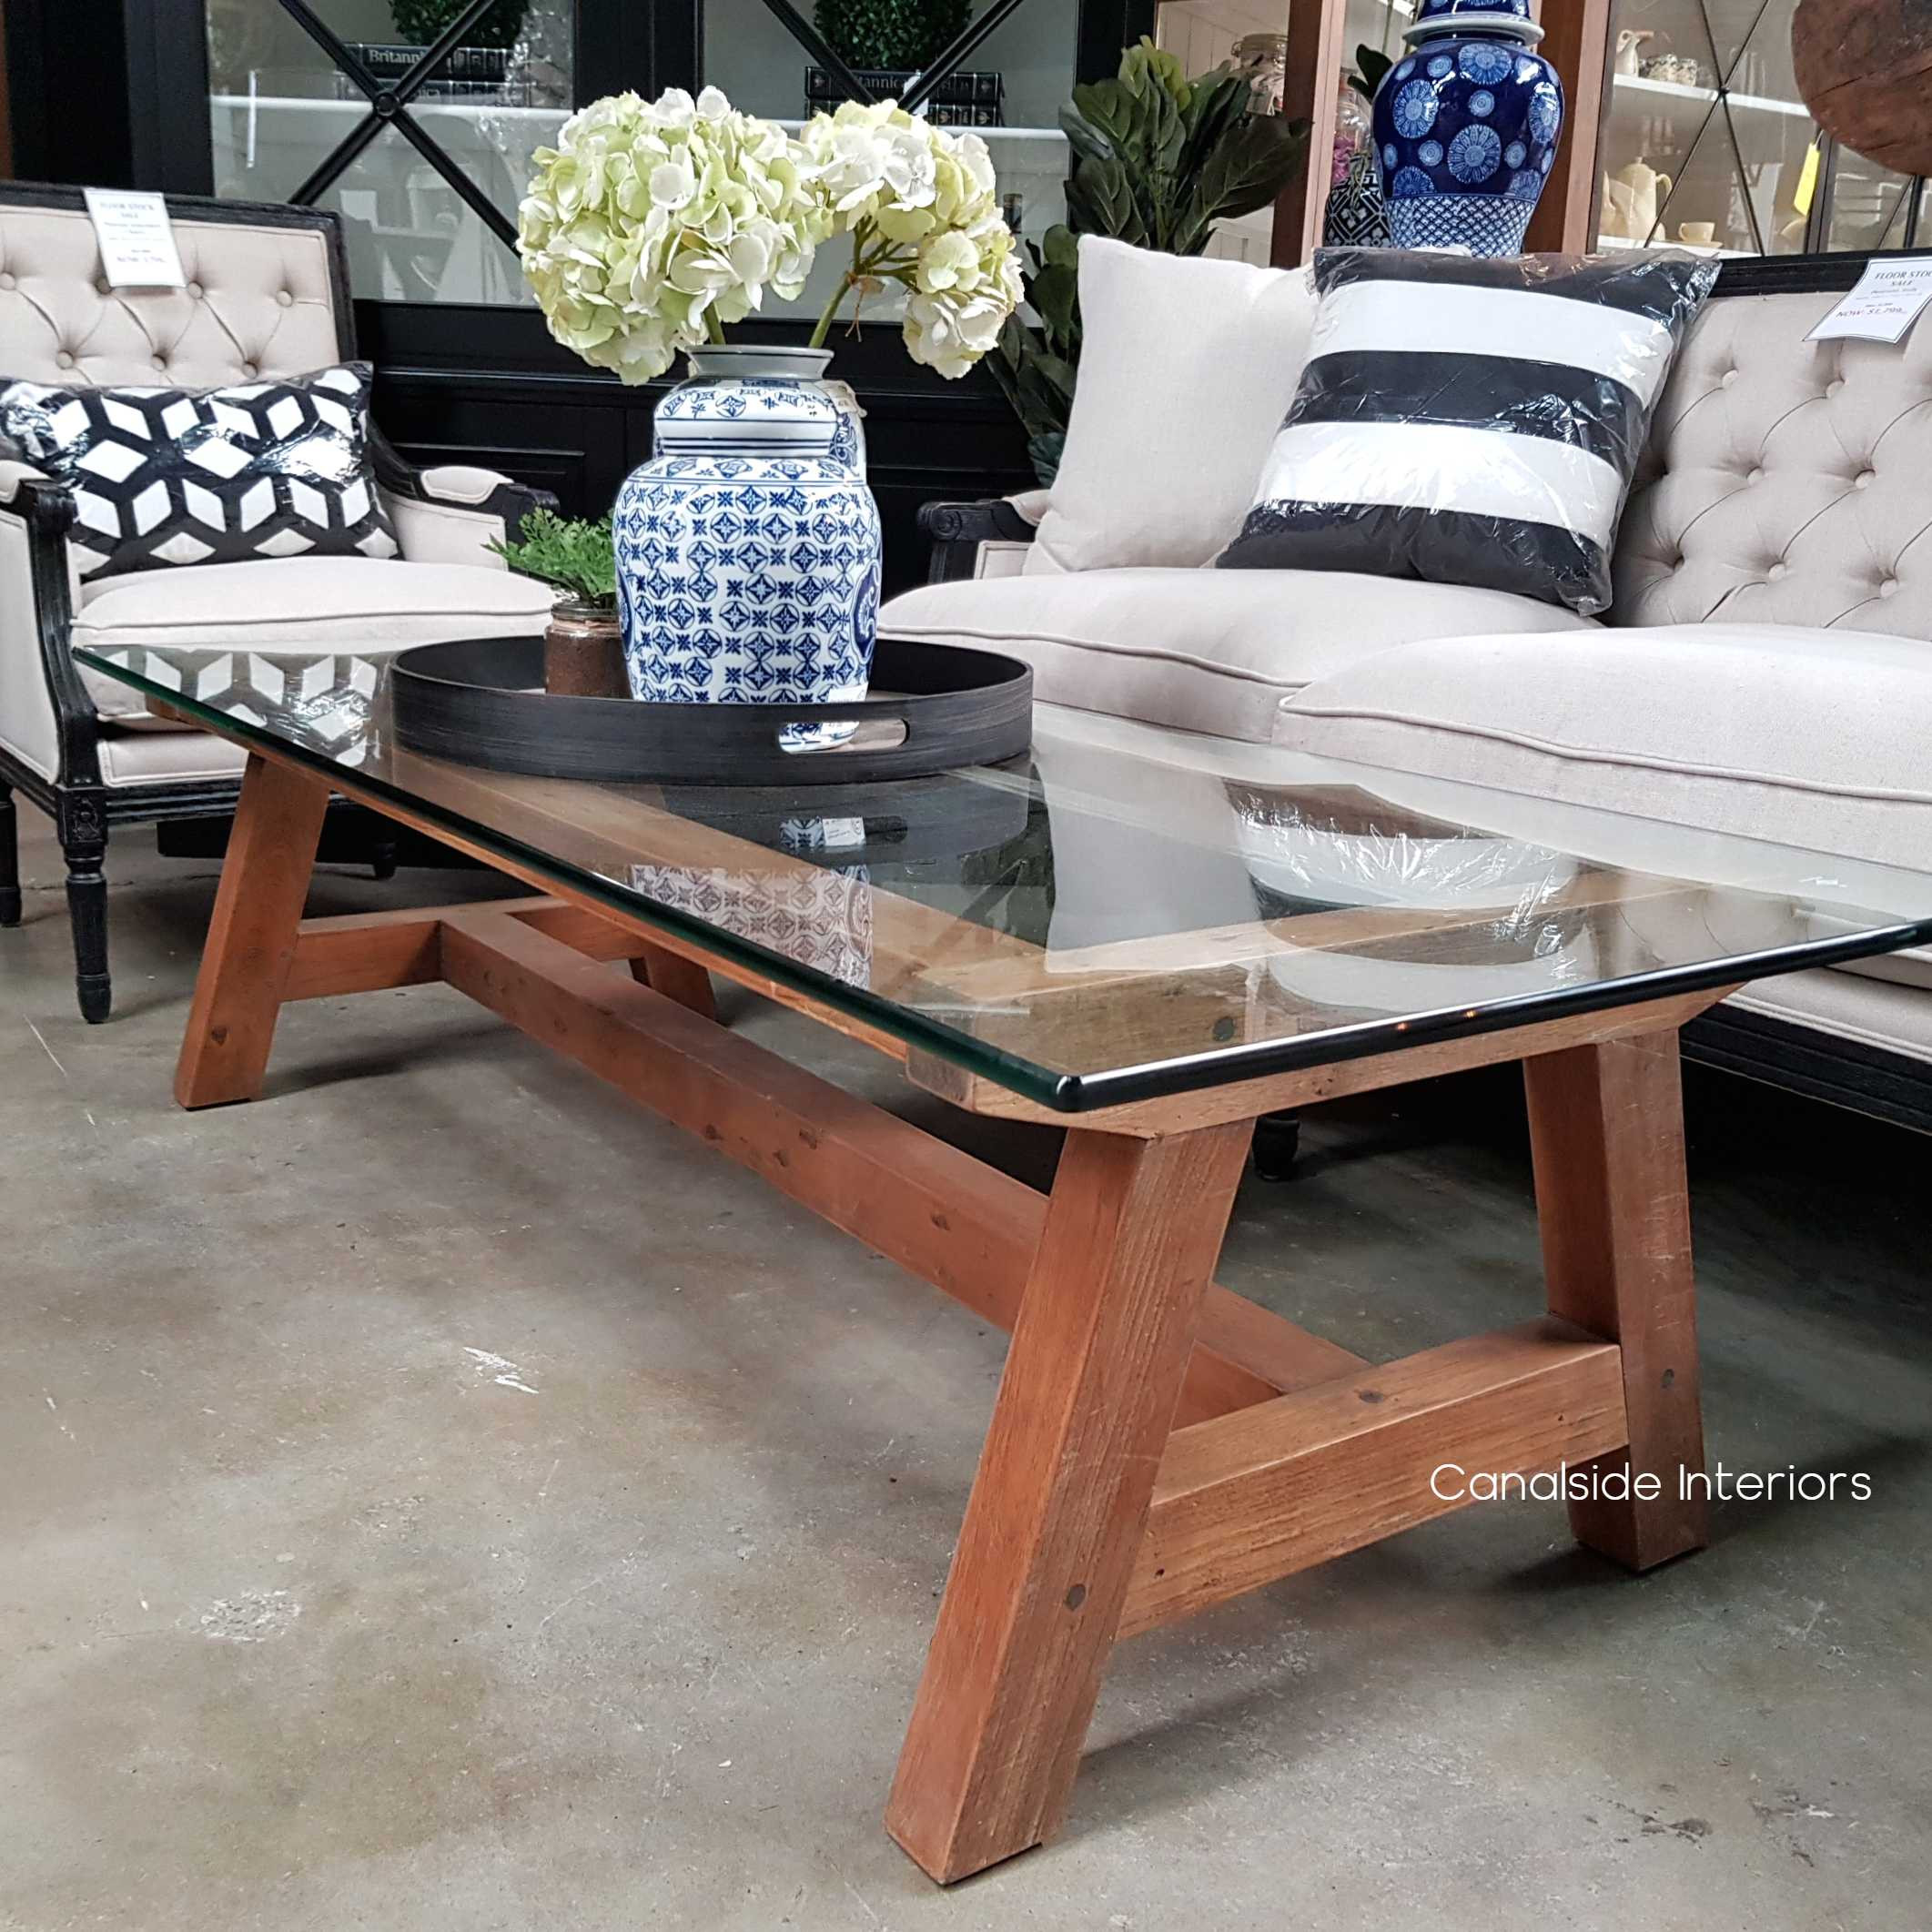 Galaxy Glass Coffee Table  TABLES, HAMPTONS Style, PLANTATION Style, TABLES Coffee Tables, LIVING Room, LIVING Coffee & Side Tables